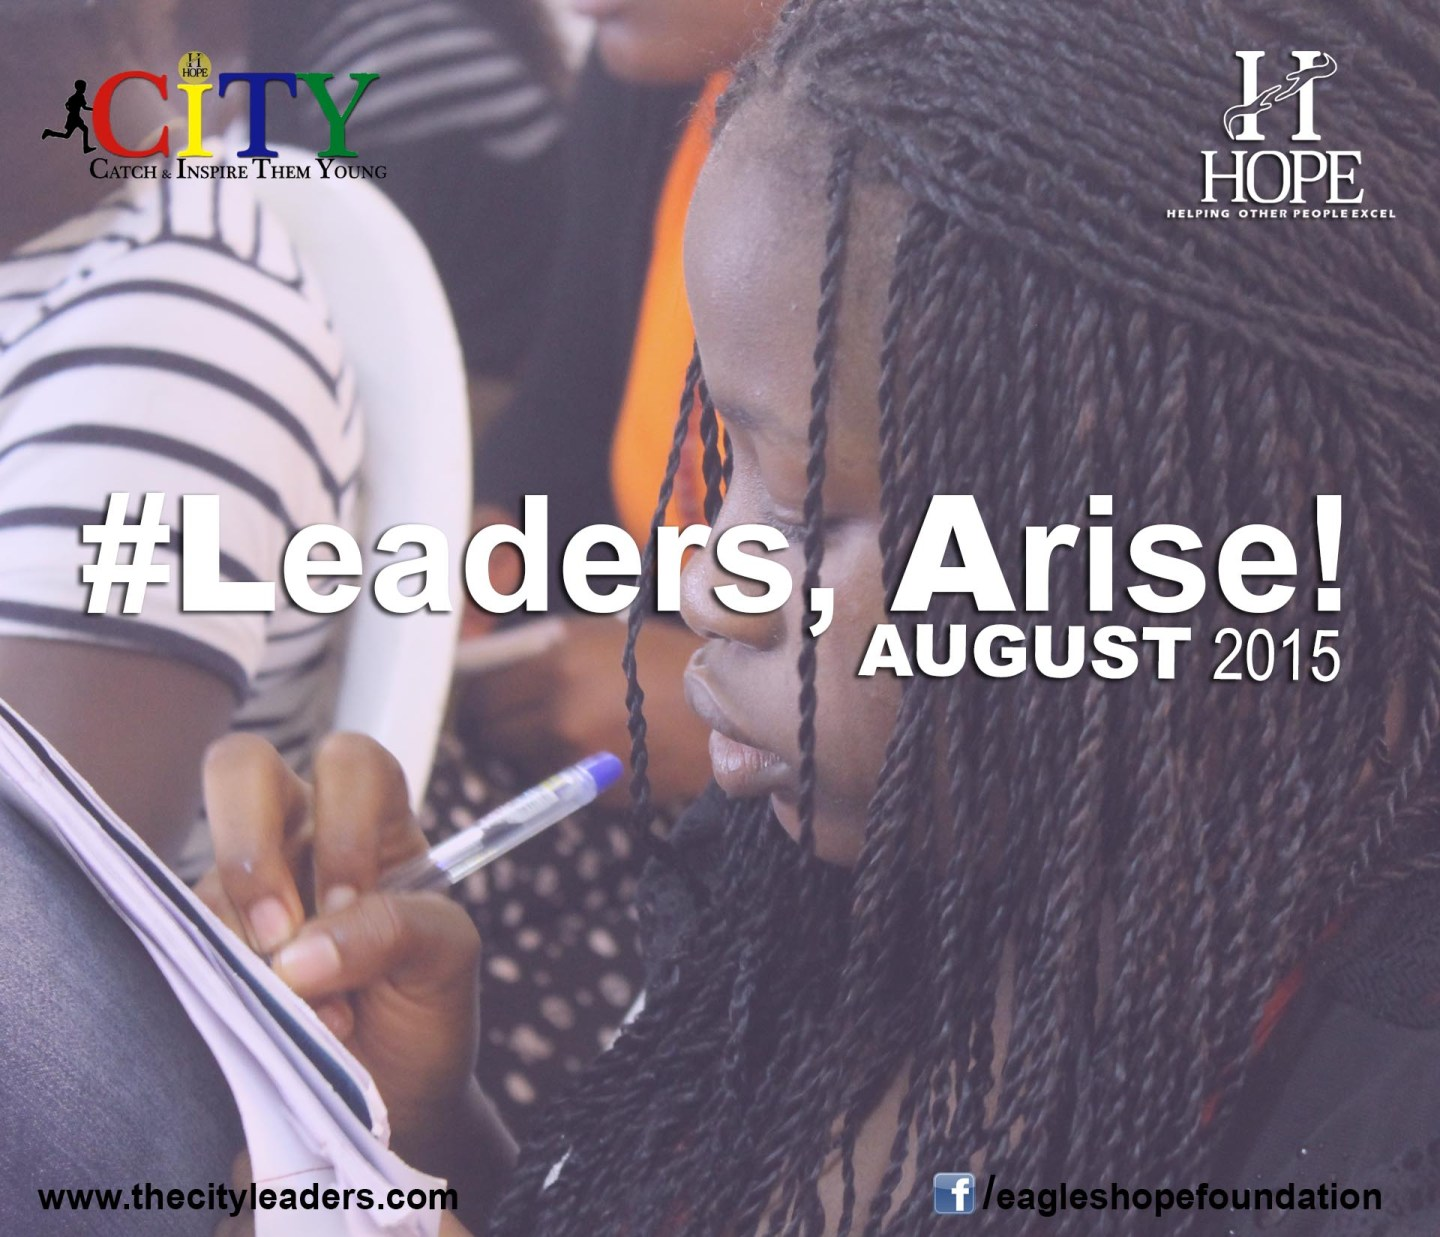 Catch & Inspire Them Young: Leader Arise